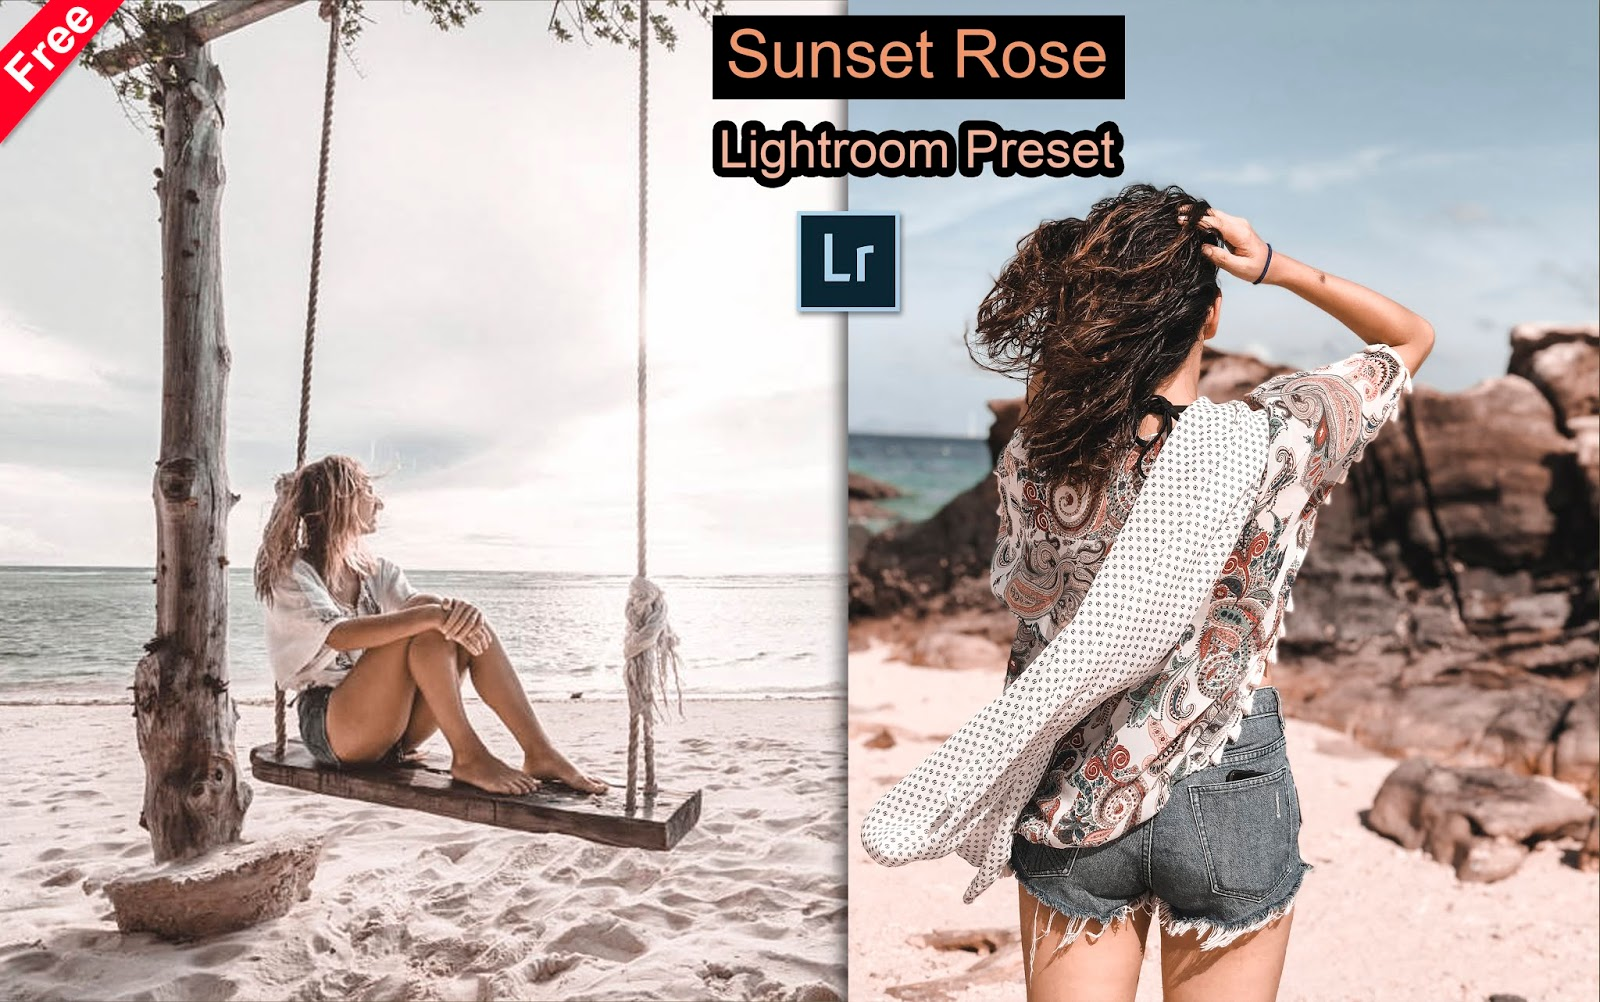 Download Sunset Rose Lightroom Preset for Free | How to Edit Your Photos to Sunset Rose Effect in Lightroom